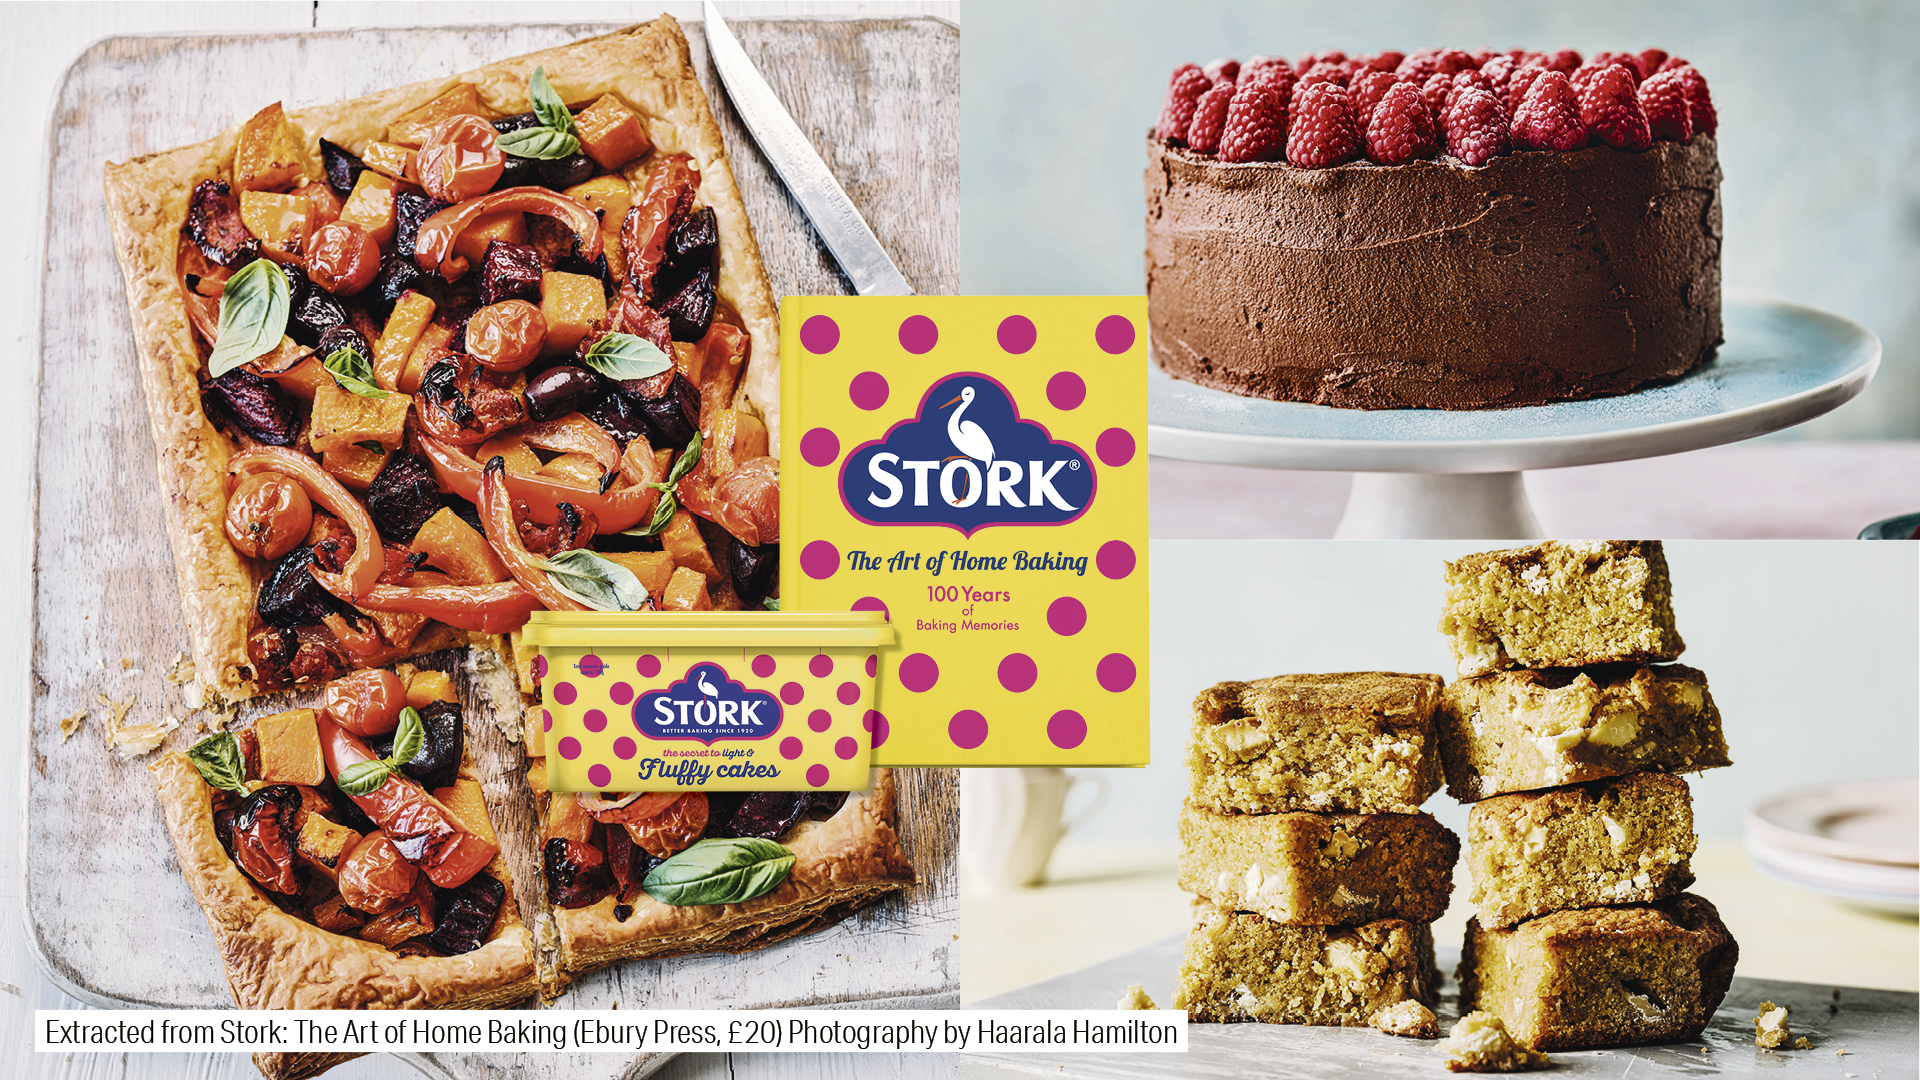 WIN! The Art of Home Baking recipe book by Stork, the nation's baking margarine